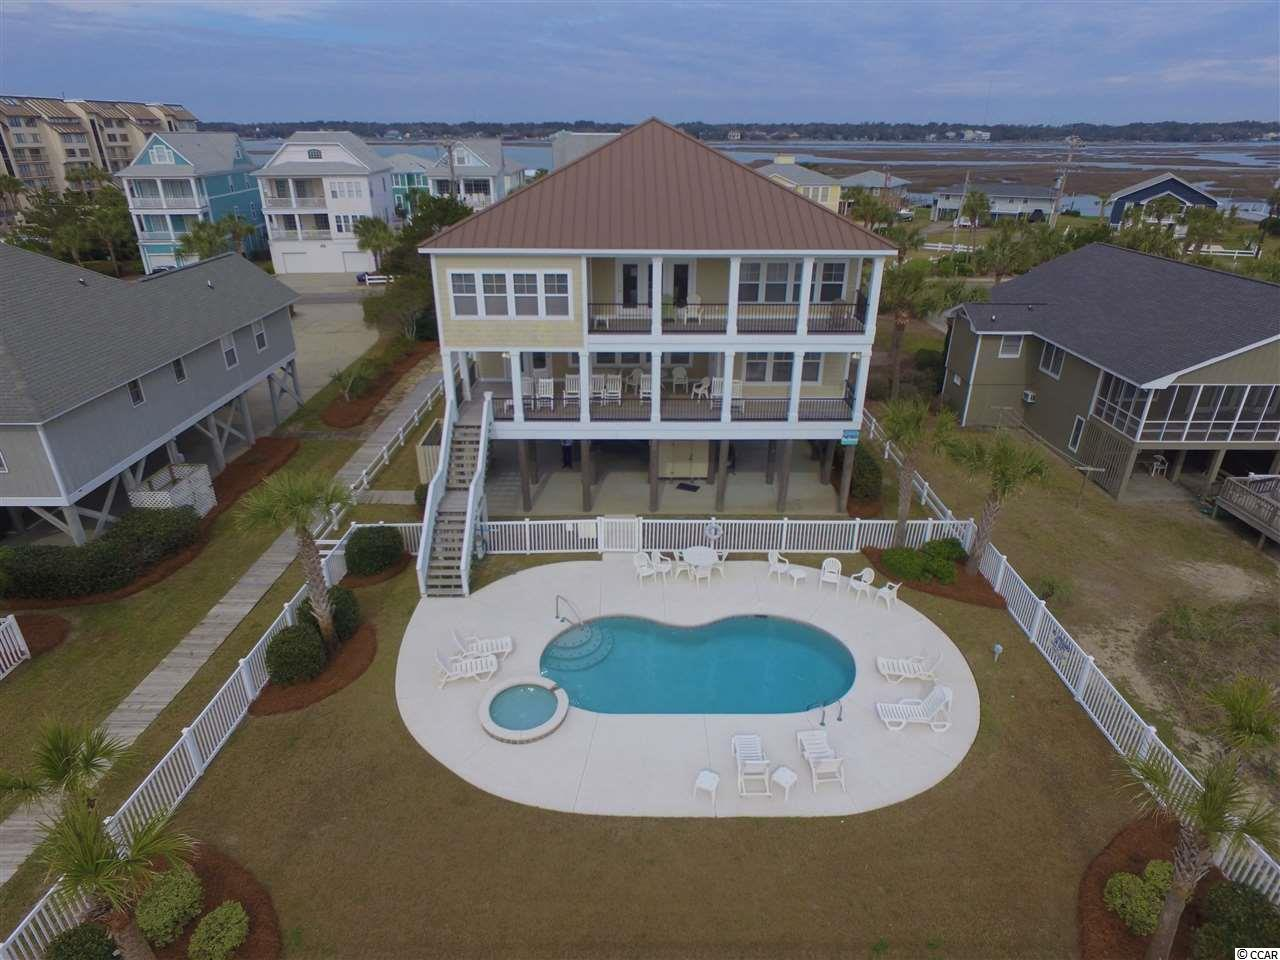 """Looking to channel your inner """"Sea Spirit?""""  Look no further as this beautiful beach home consists of 8-bedrooms and 8.5 bathrooms.  It sits on one of the deepest and most protected (by sand dunes) 75' wide lots in Garden City Beach.  It has hardwood floors in the living areas and granite counter tops & stainless steel appliances in the kitchen.  Amenities such as a private heated pool, hot tub, double oceanfront porches, two very large living areas (upstairs living area has a pool table and kitchenette) all make it a very good rental property.  You are just a short walk from the ship store and fishing charters at Marlin Quay Marina and wonderful meals at Gulf Stream Cafe.  Contact the listing agent, or your Realtor, for more details or to set up a private showing."""